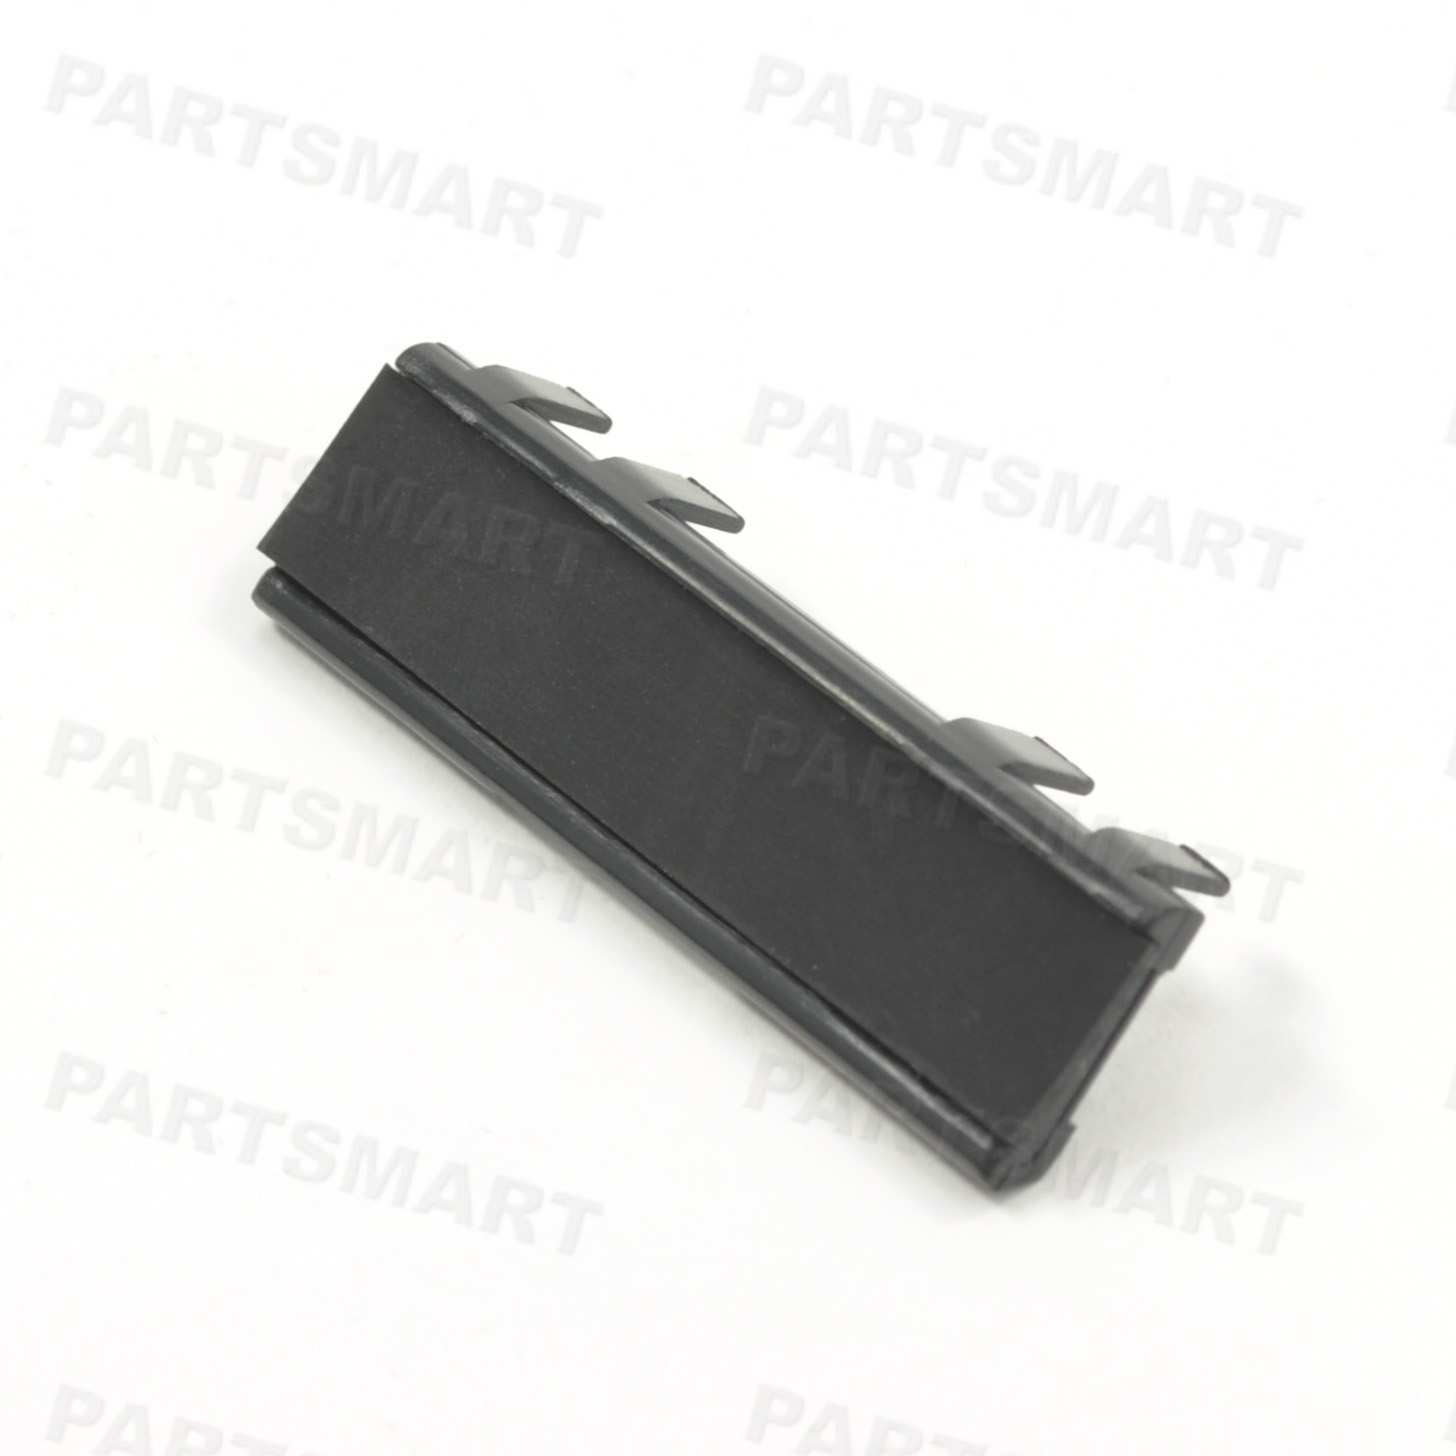 Rl1 2115 000 Separation Pad Tray 1 For Hp Laserjet Pro